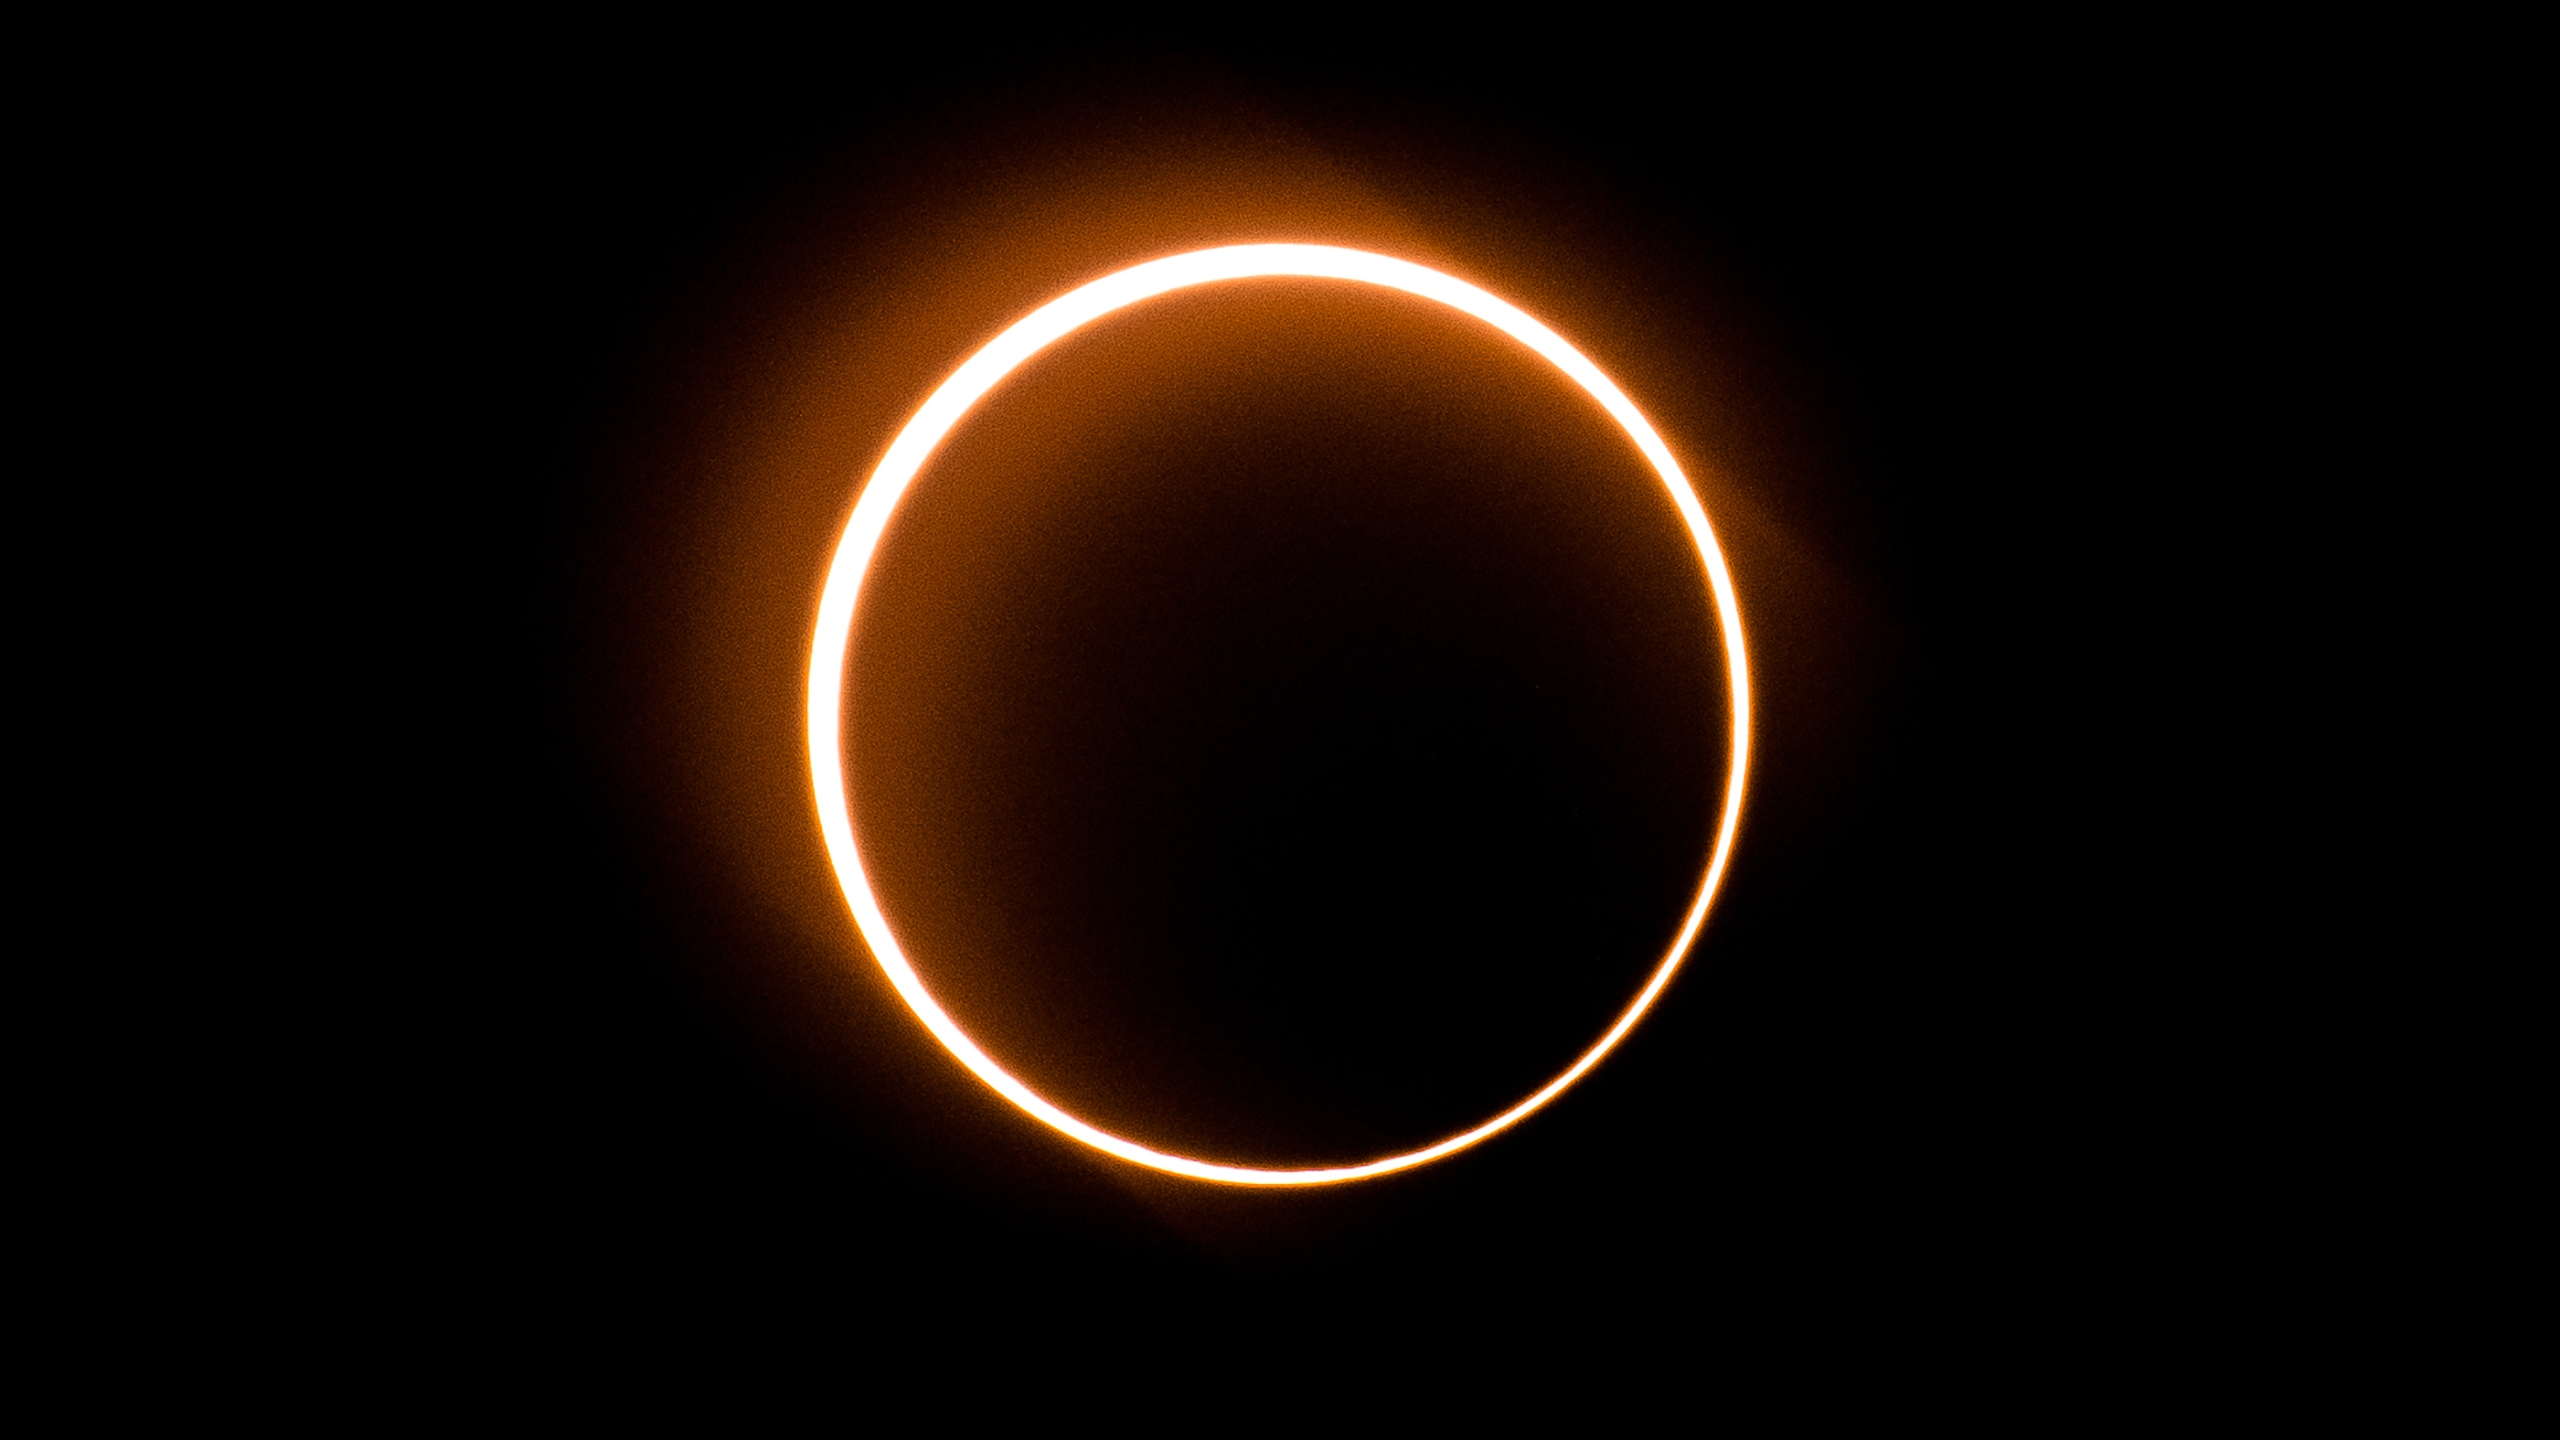 """The moon moves in front of the sun in a rare """"ring of fire"""" solar eclipse as seen from Tanjung Piai, Malaysia on December 26, 2019. (Credit: SADIQ ASYRAF/AFP via Getty Images)"""